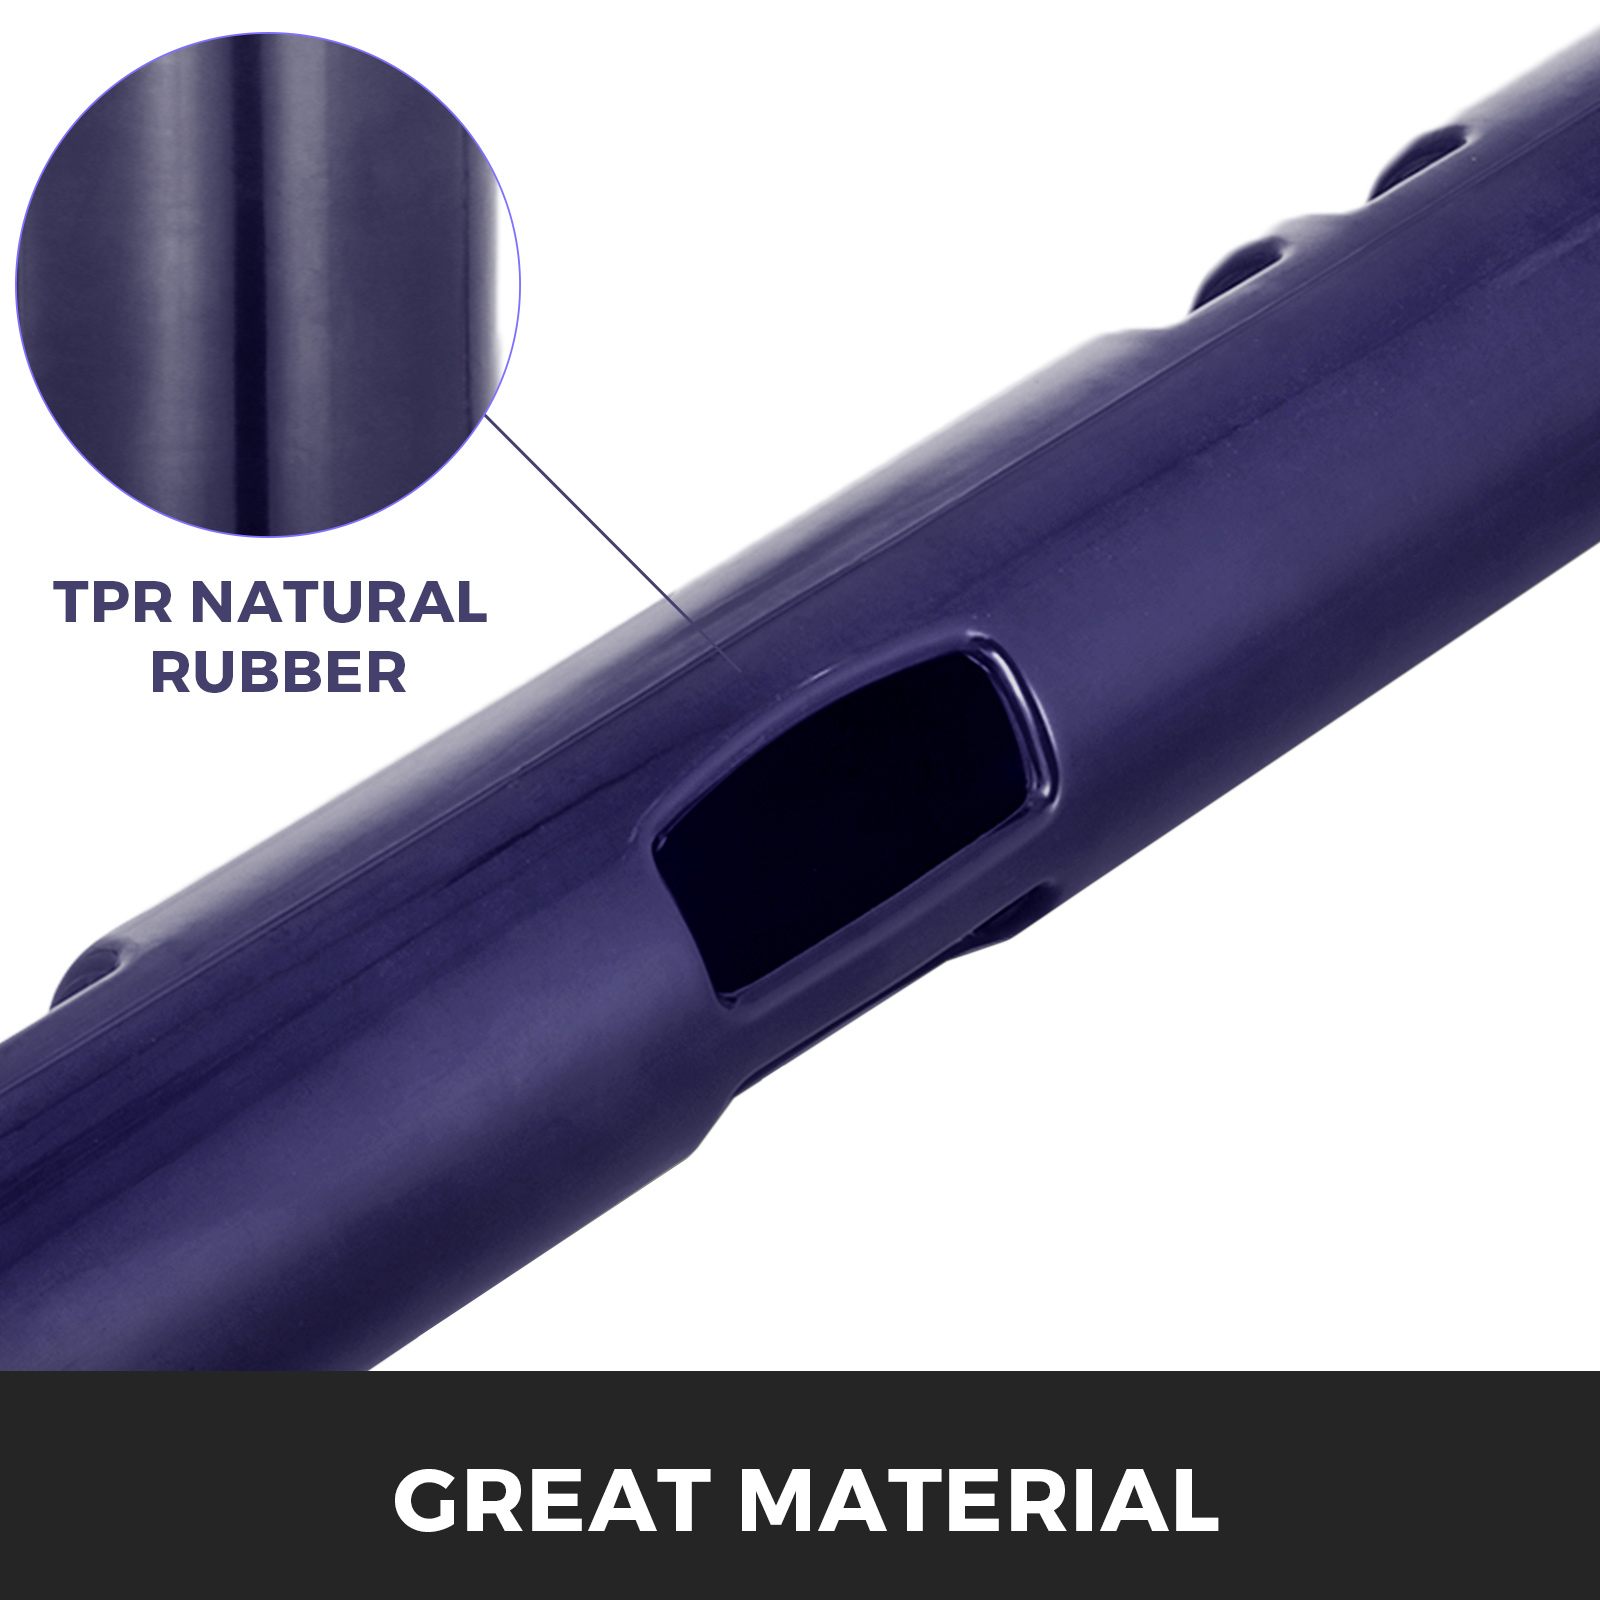 Vipr-Fitpro-Fitness-Tube-Loaded-Movement-Training-weightlifting-4-6-8-10-12-Kg thumbnail 134